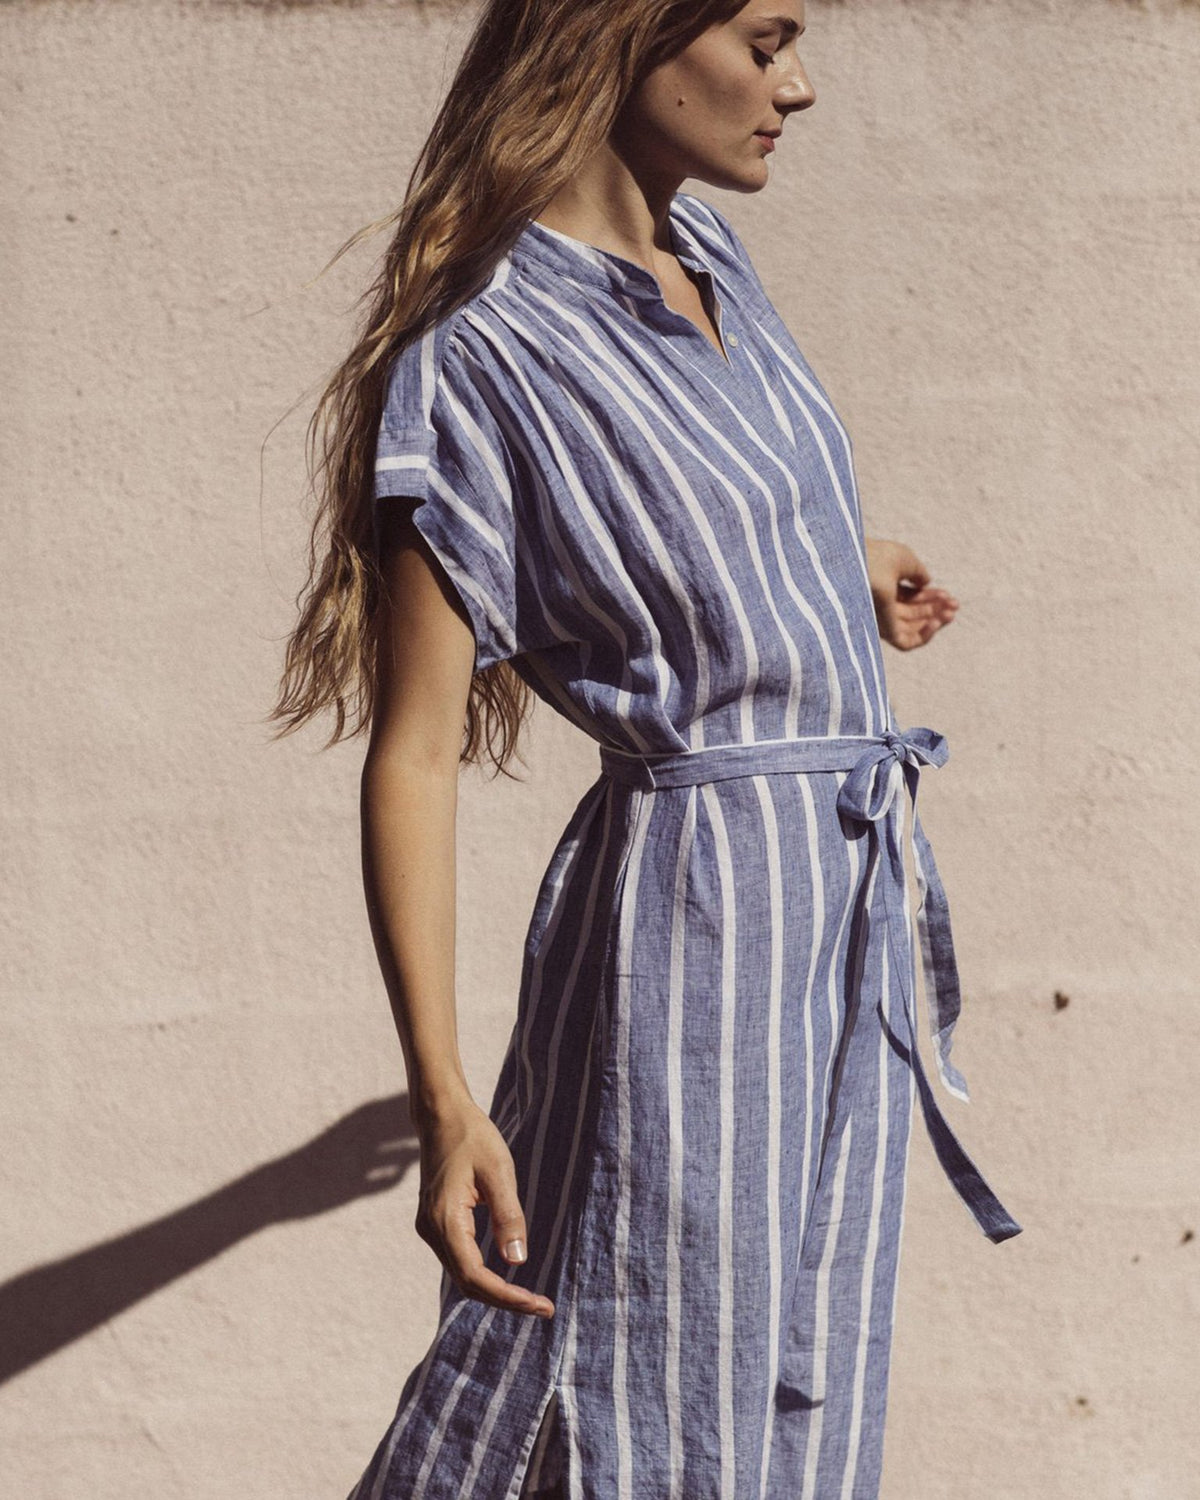 Trovata Clothing Astrid Easy Dress in Blue Awning Stripe